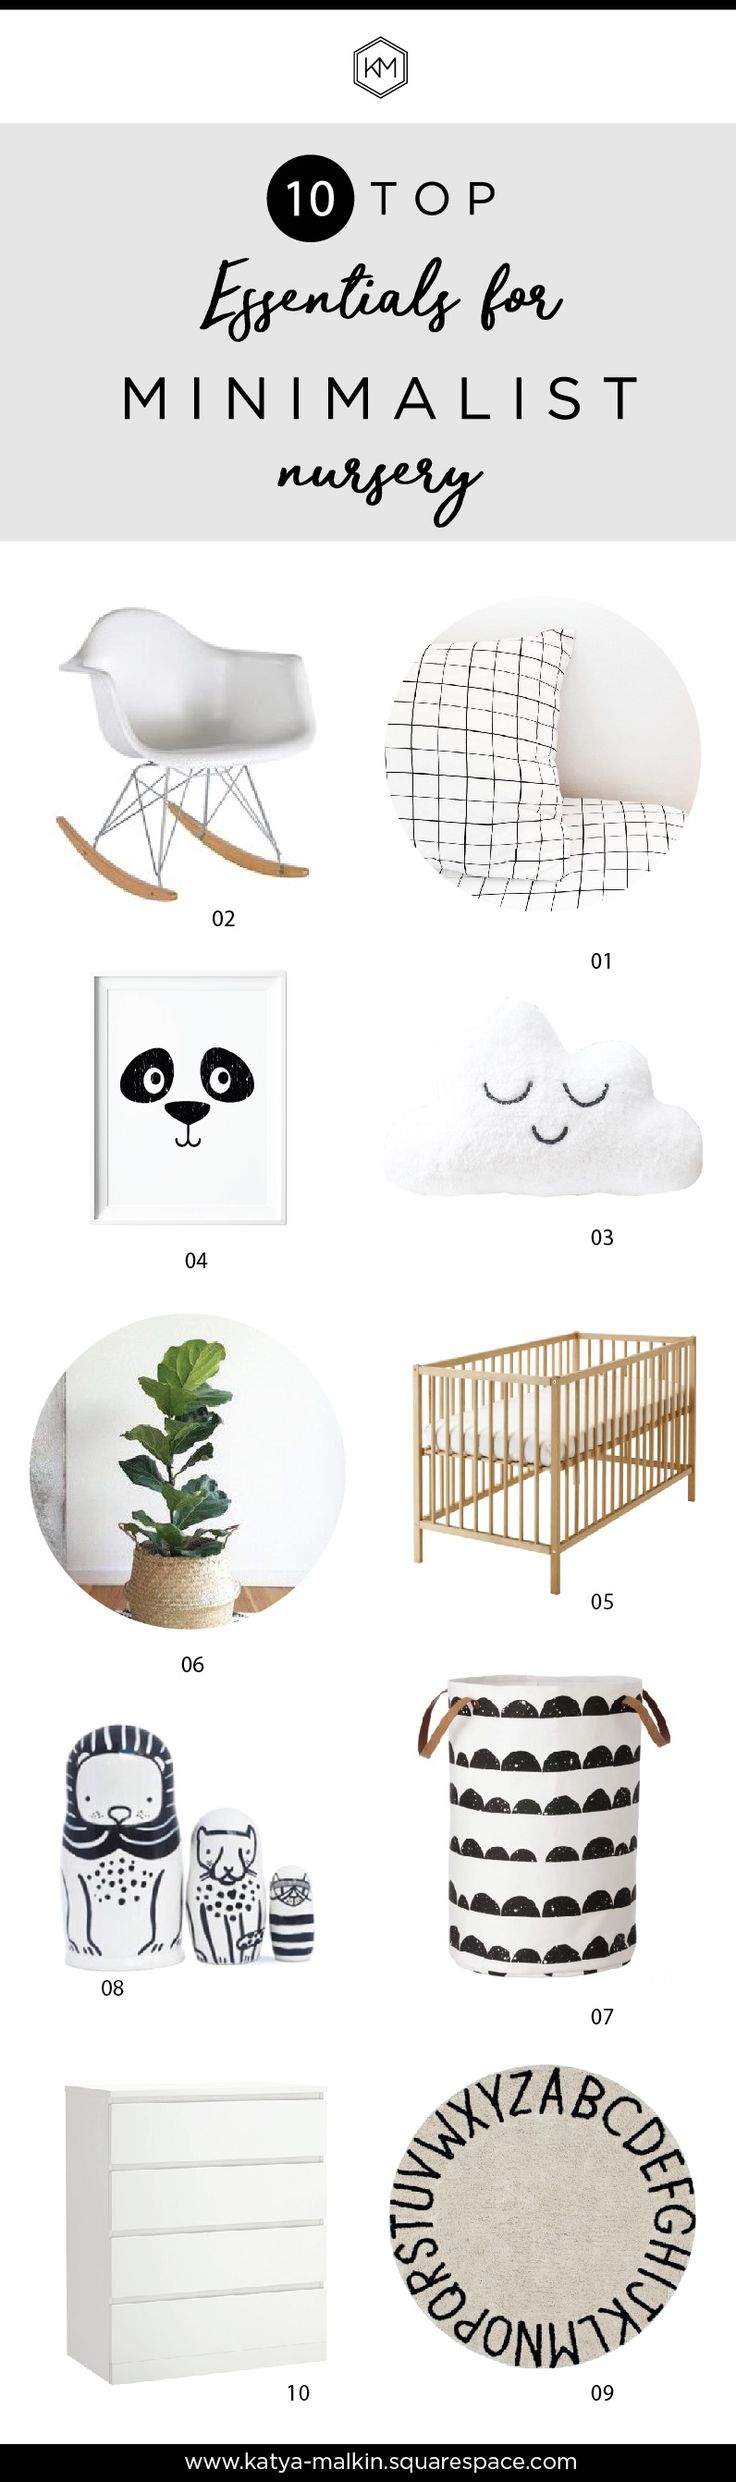 Minimalist nursery decor, nursery decor ideas, nursery decor boy, nursery decor girl, nursery decor monochrome, nursery decor black and white, baby shower gift ideas, baby shower black and white, nursery pillow, nursery wall art, nursery crib #minimalistnurserymusthaves #minimalistnursery #monochromenursery #kidsroomdecorblog